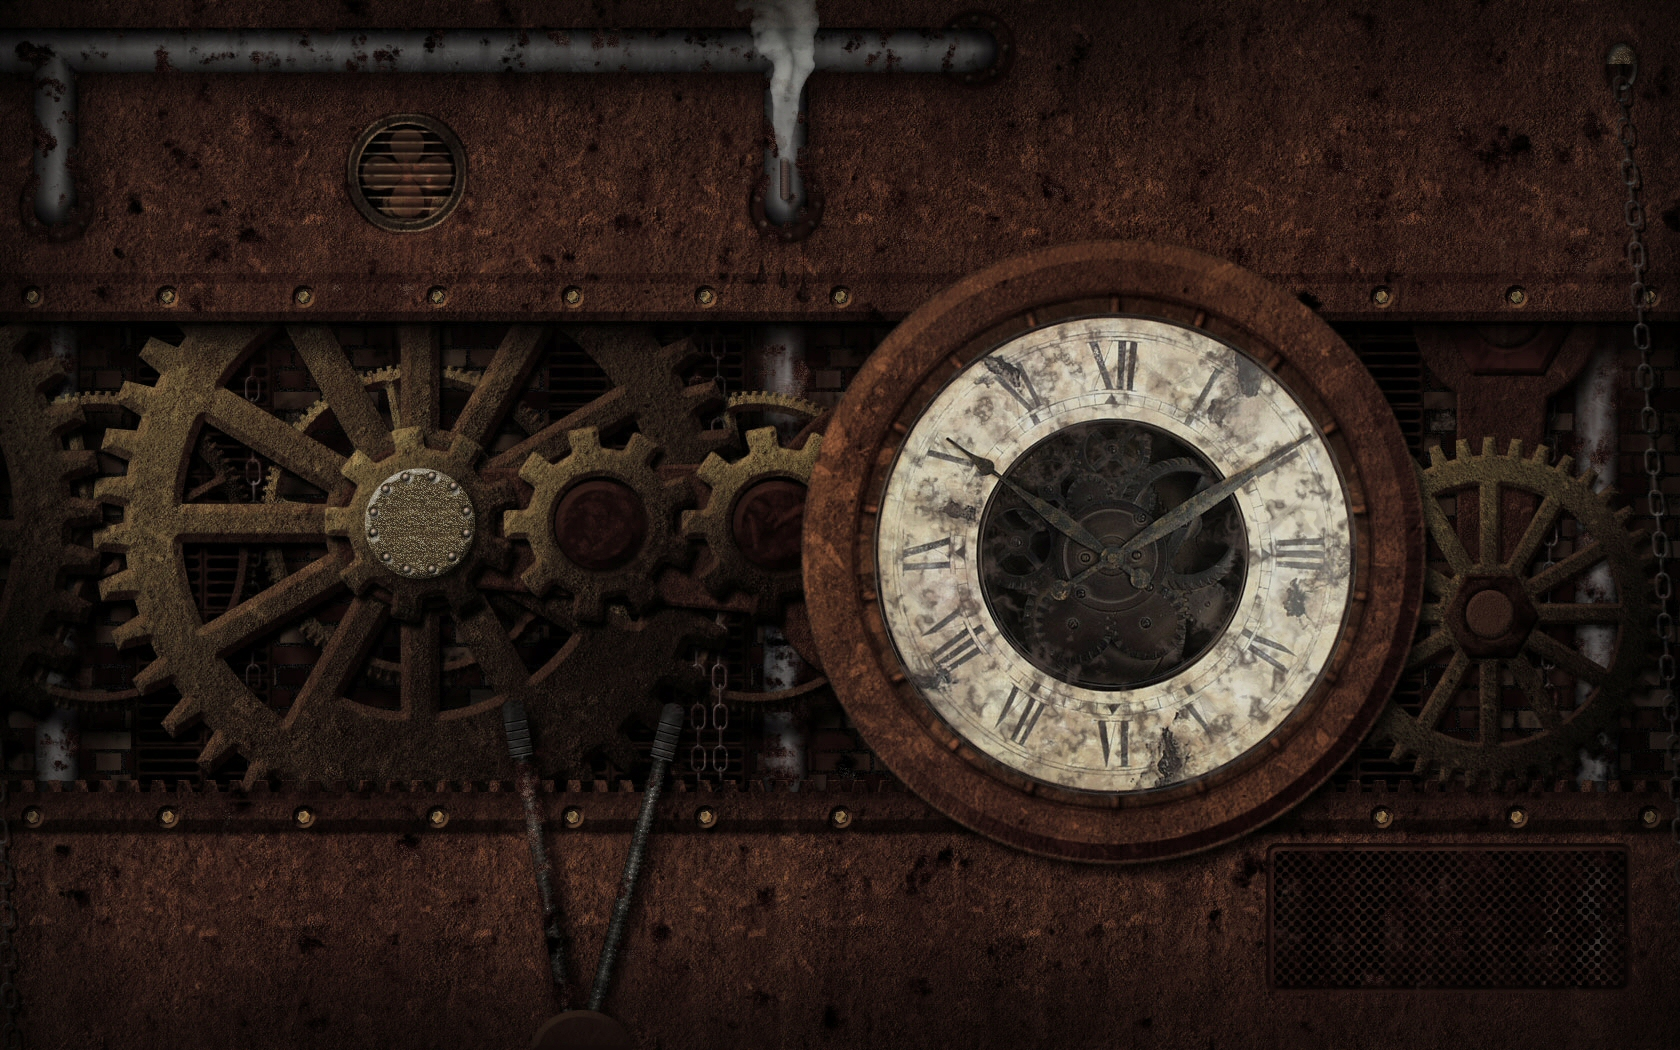 Download Steampunk Wallpaper 1680x1050 Wallpoper 267428 1680x1050